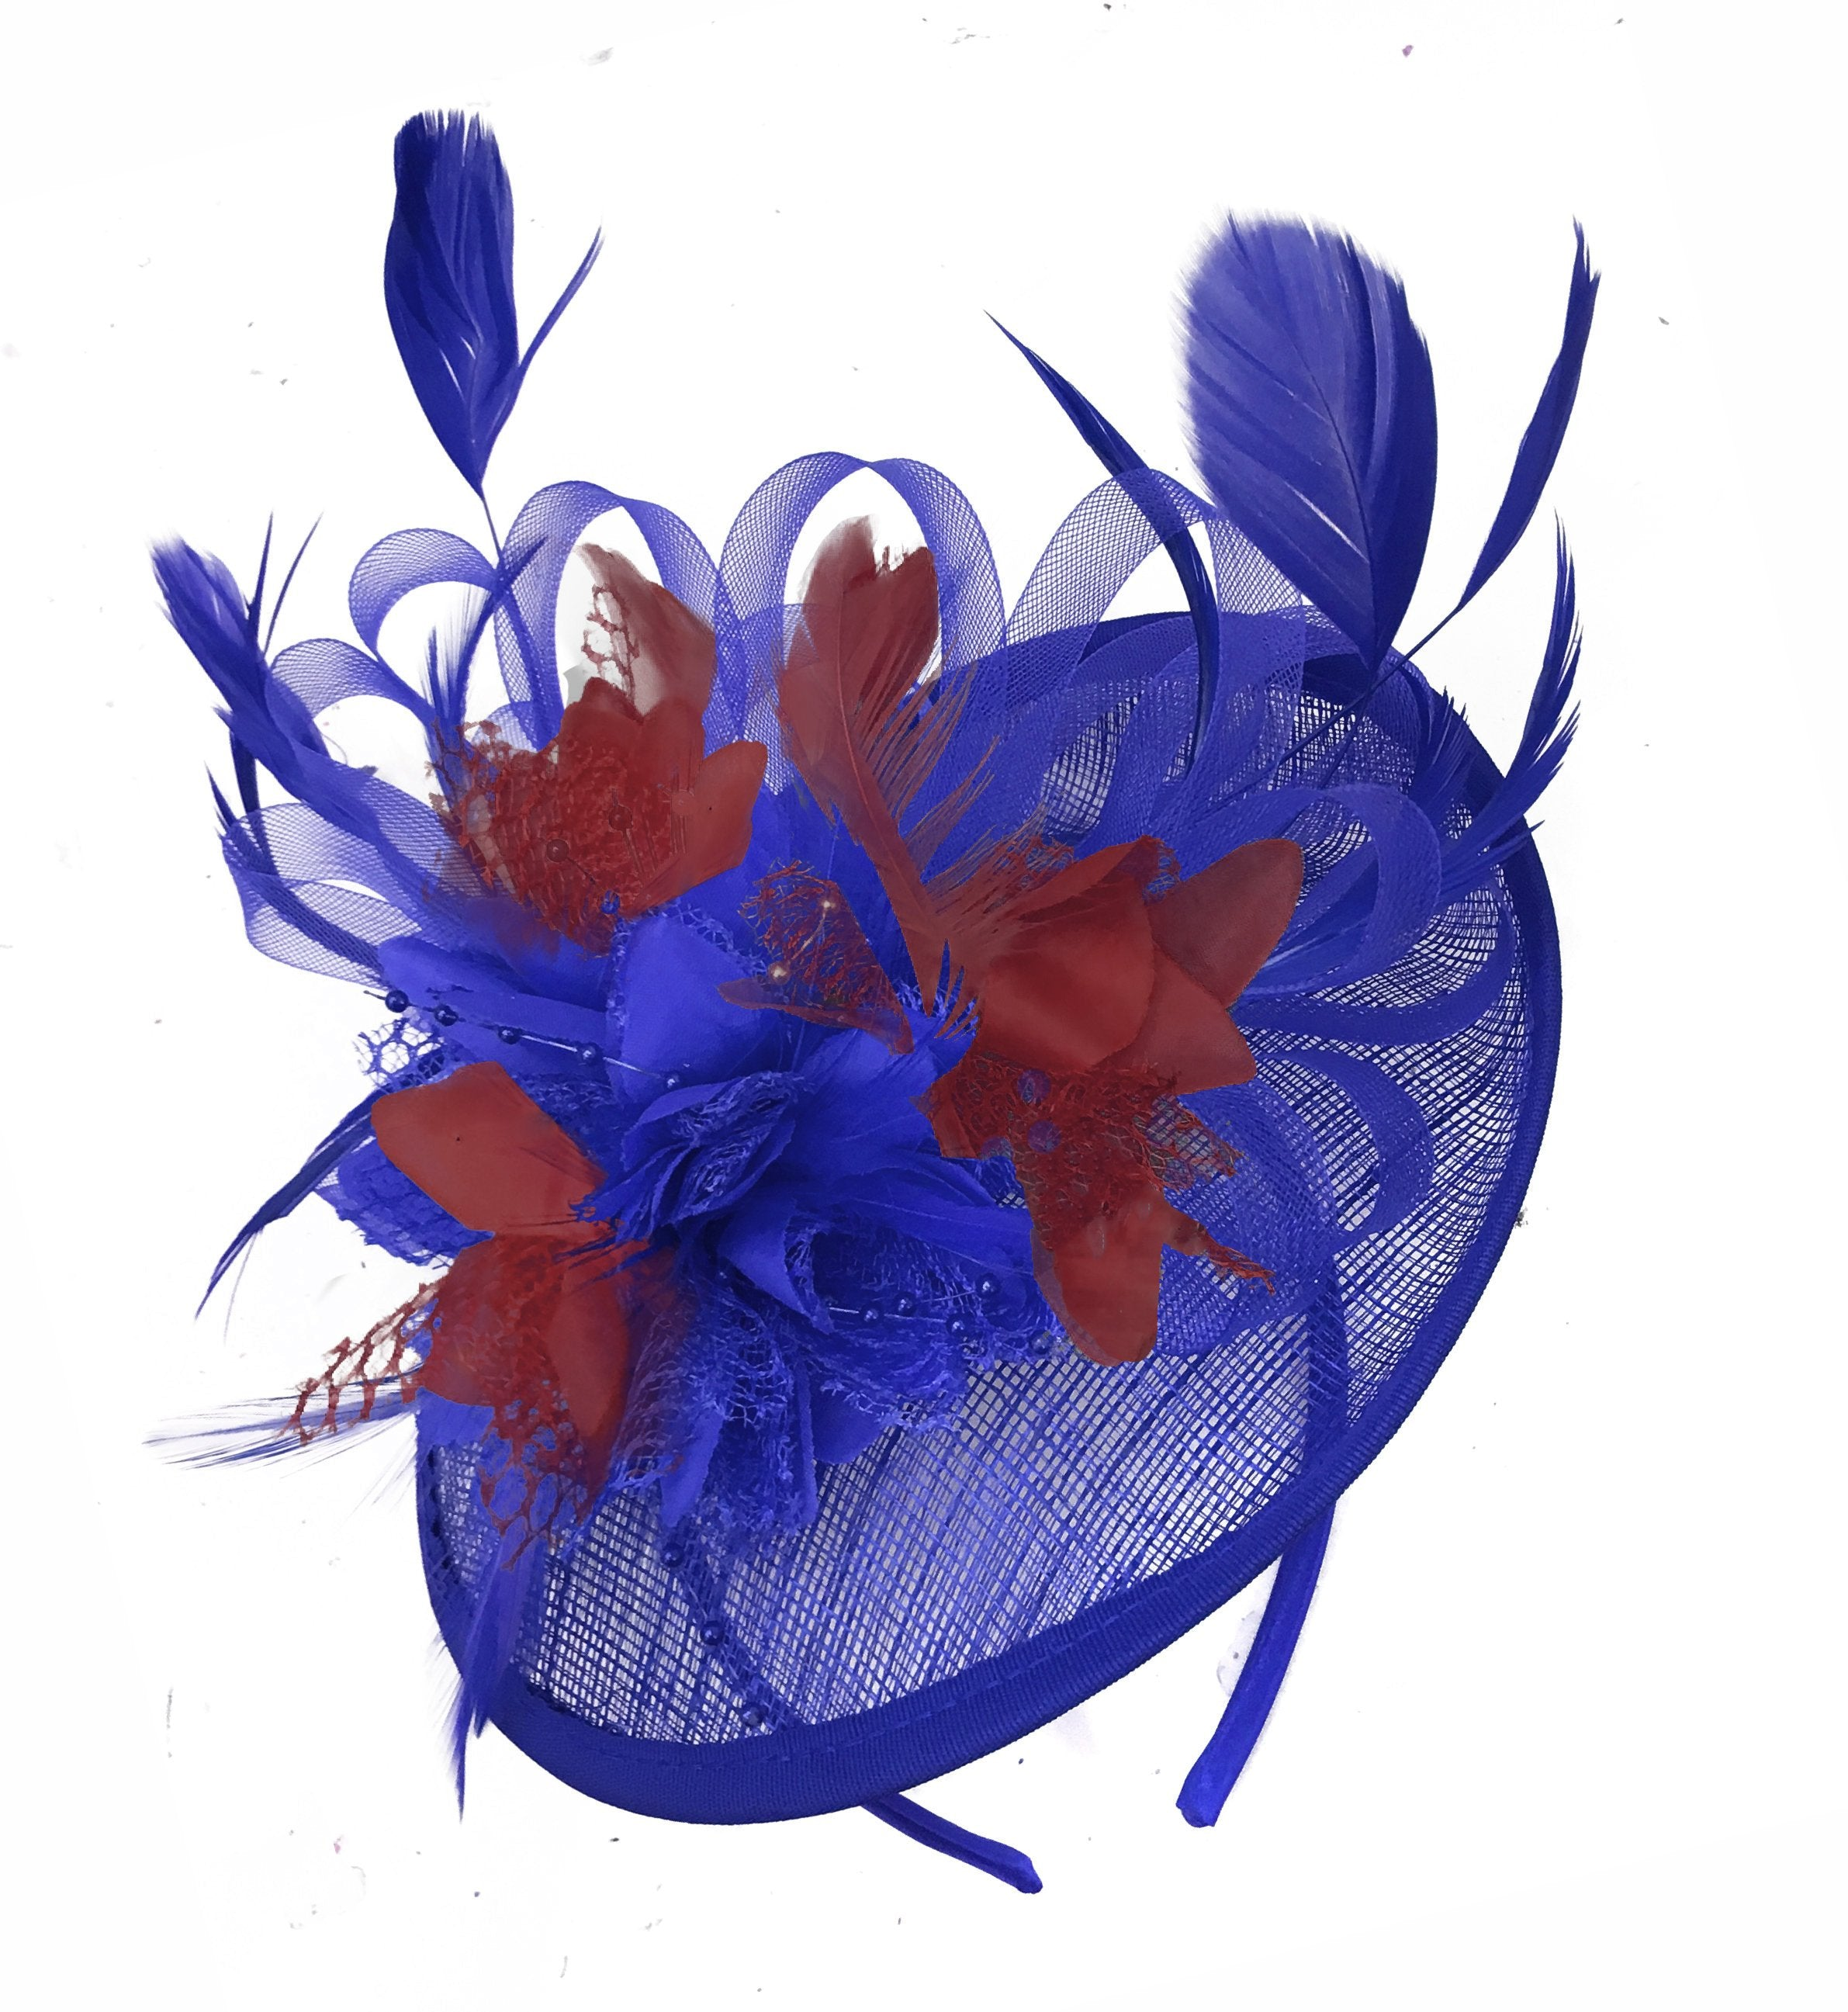 Caprilite Blue and Burgundy Sinamay Disc Saucer Fascinator Hat for Women Weddings Headband